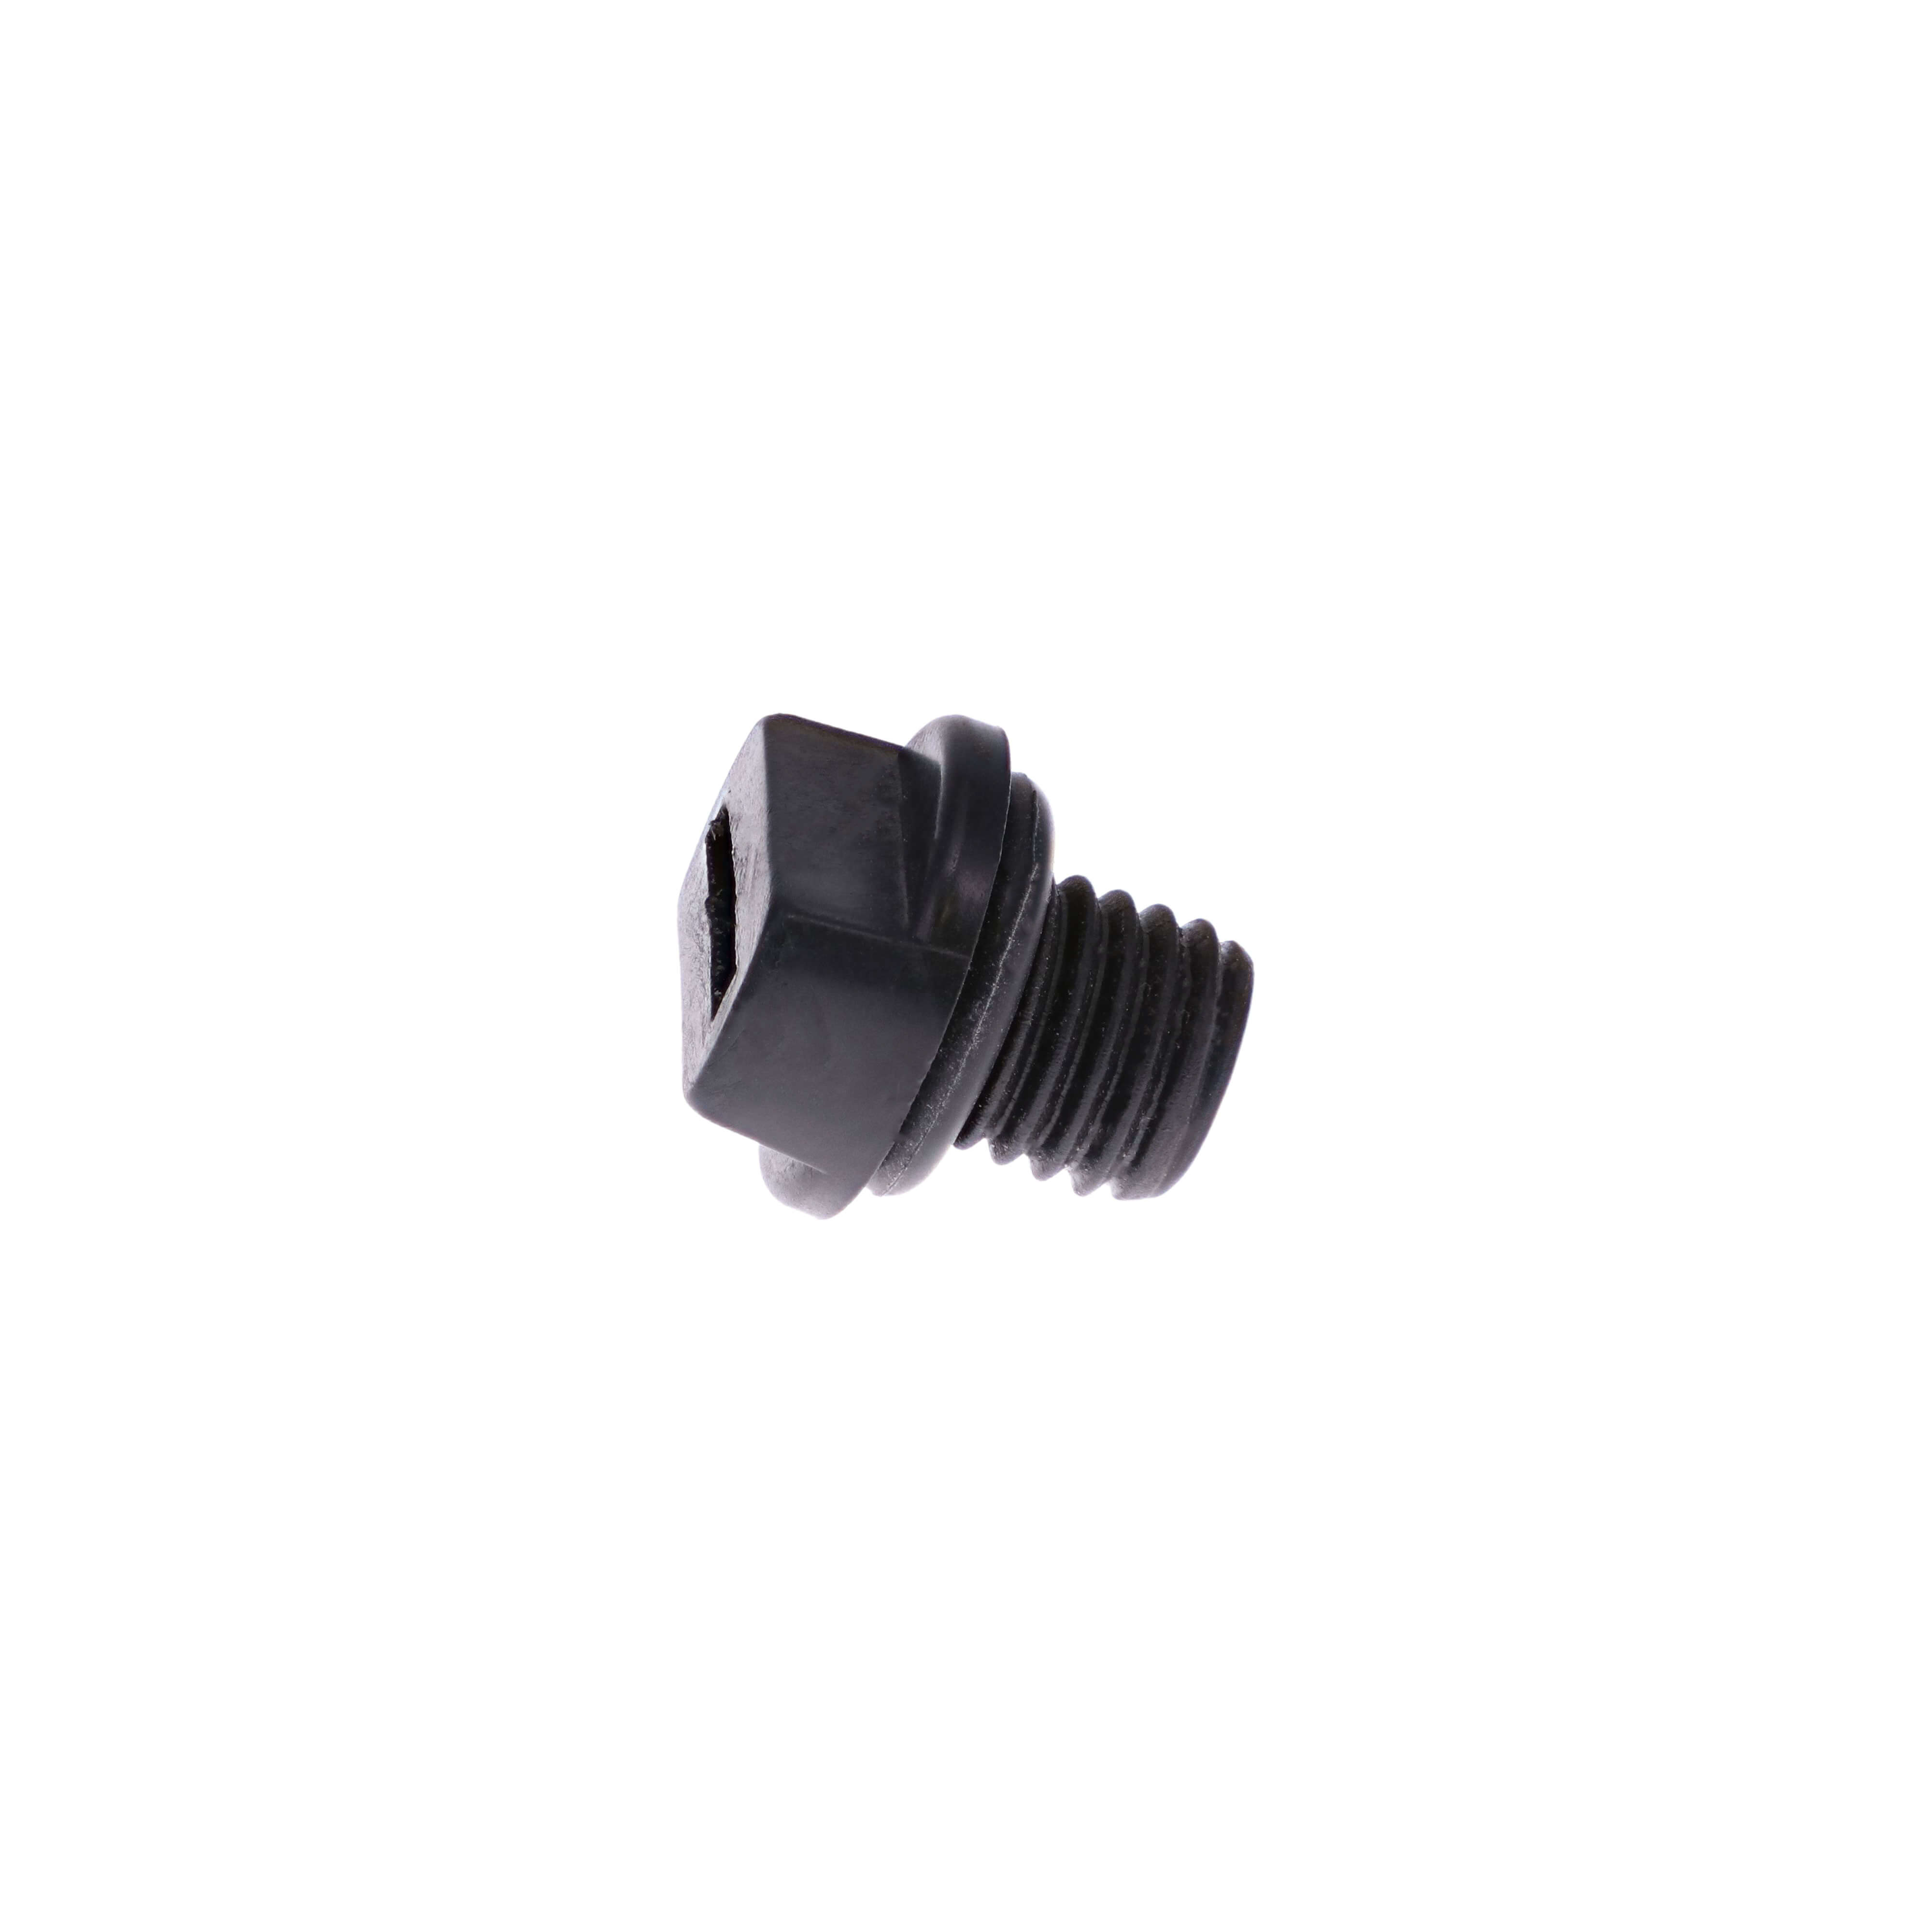 Drain Plug for DXD and LX pumps